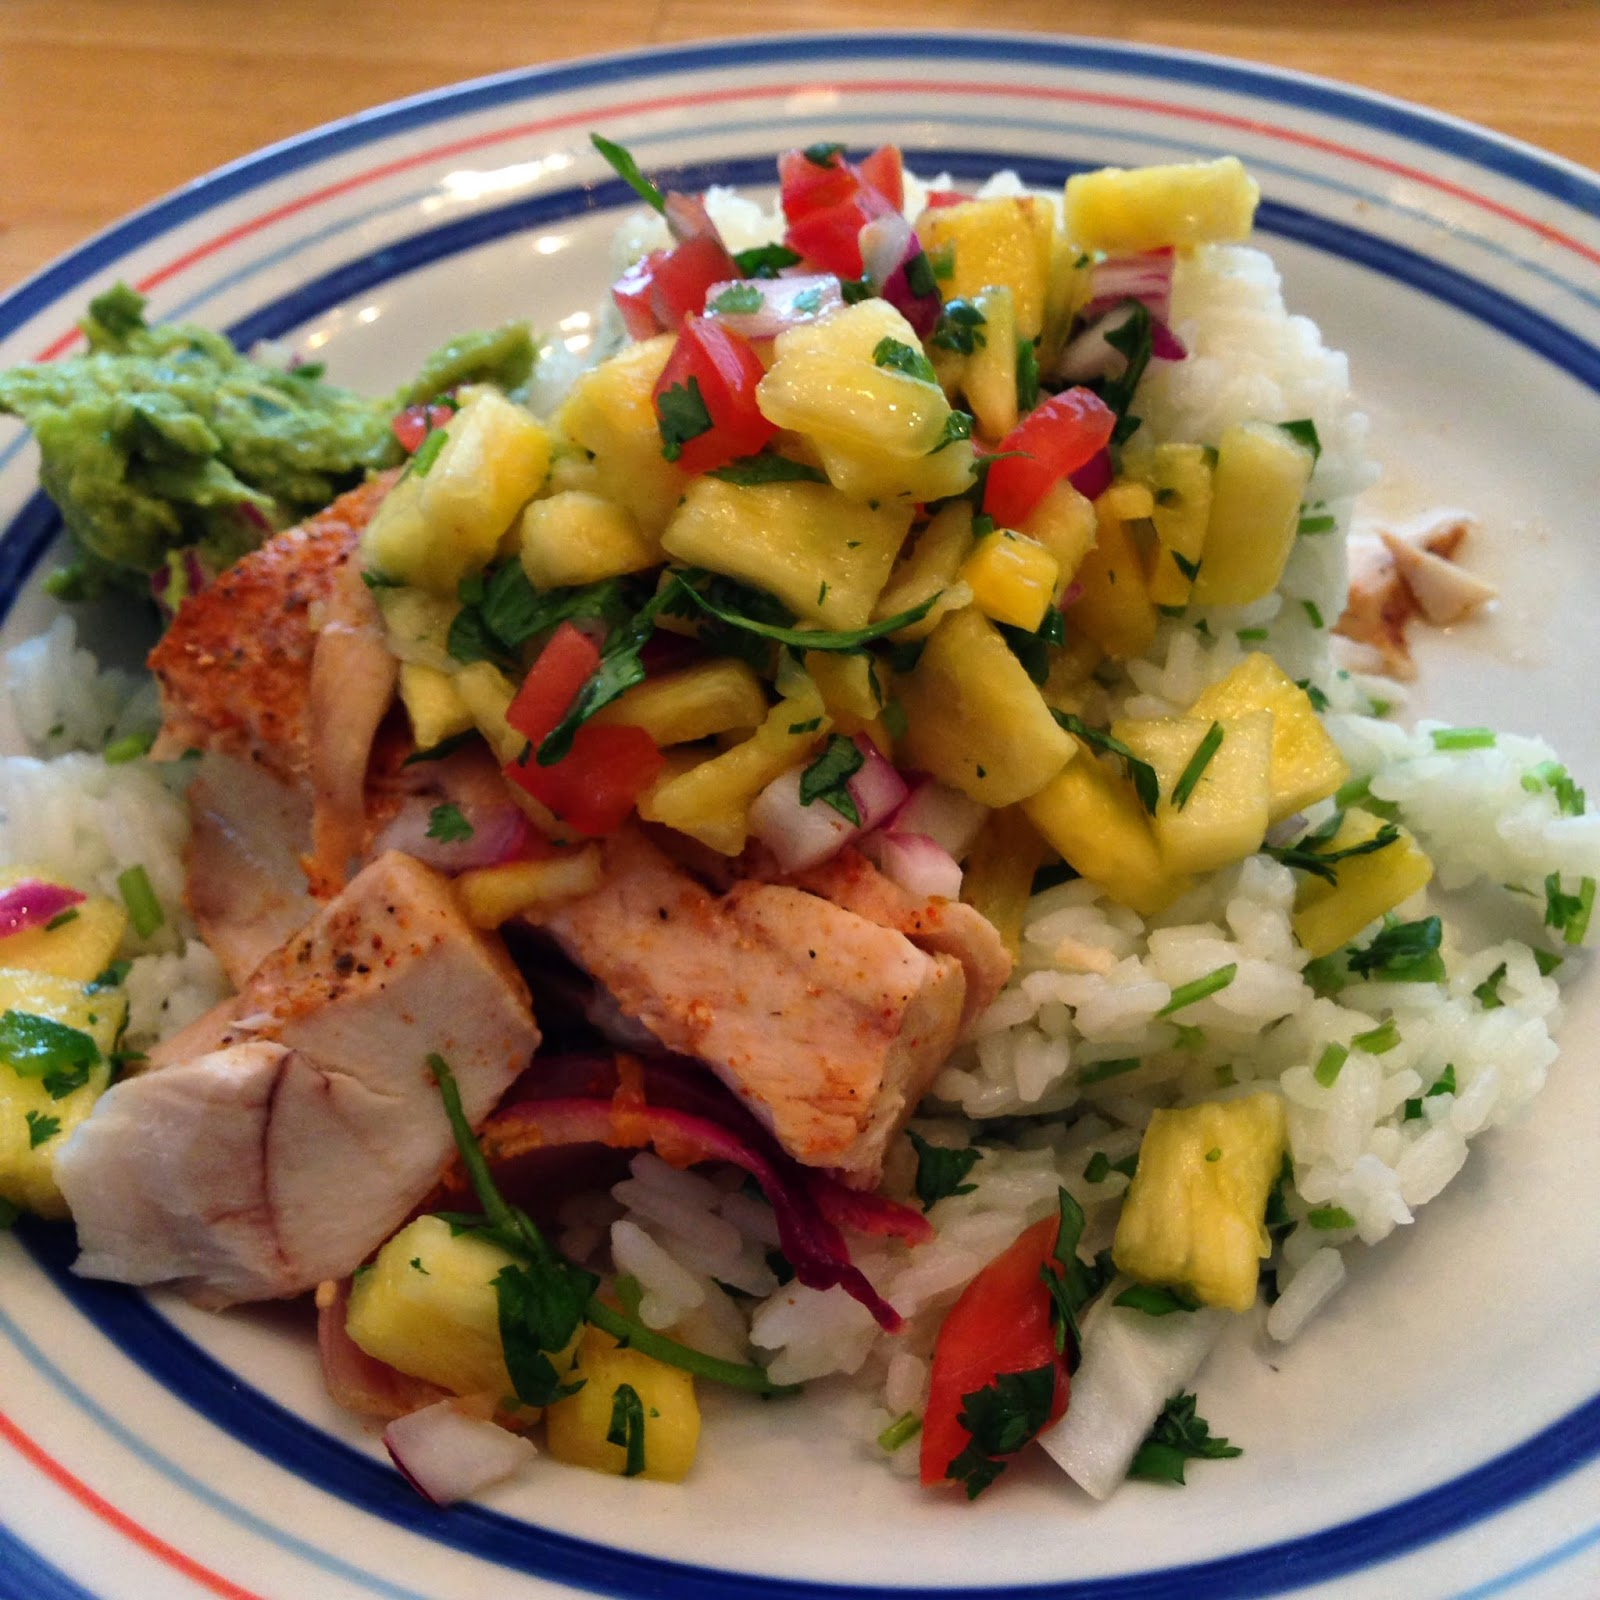 Tropical Mahi Mahi with Pineapple Salsa and Chipotle Lime Rice